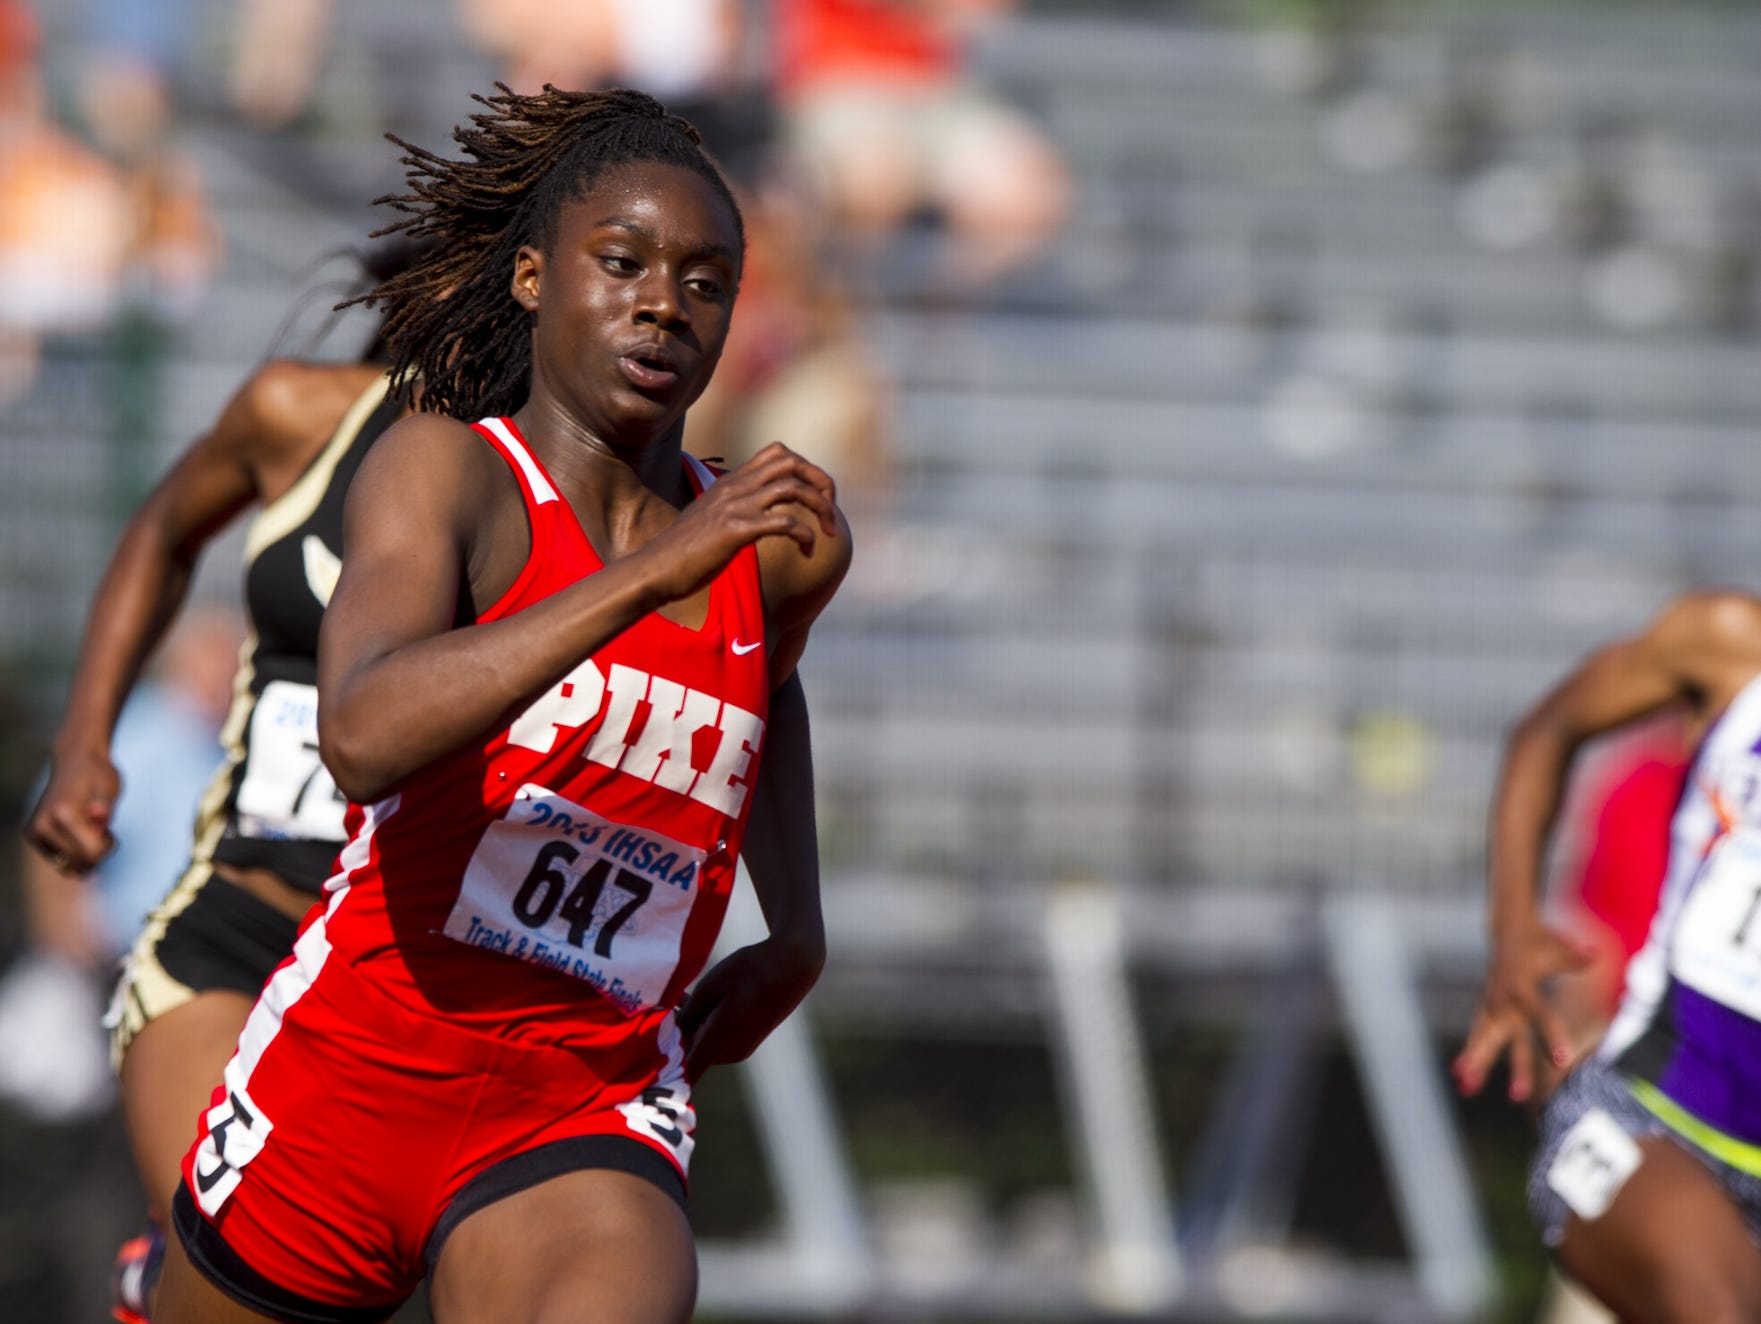 Pike High School sophomore Lynna Irby (647) competes in the 200 Meter Dash. The 42nd Annual Girl's Track and Field State Finals were held Saturday, June 6, 2015, at the Robert C. Haugh Track and Field Complex on the campus of Indiana University in Bloomington, Ind.